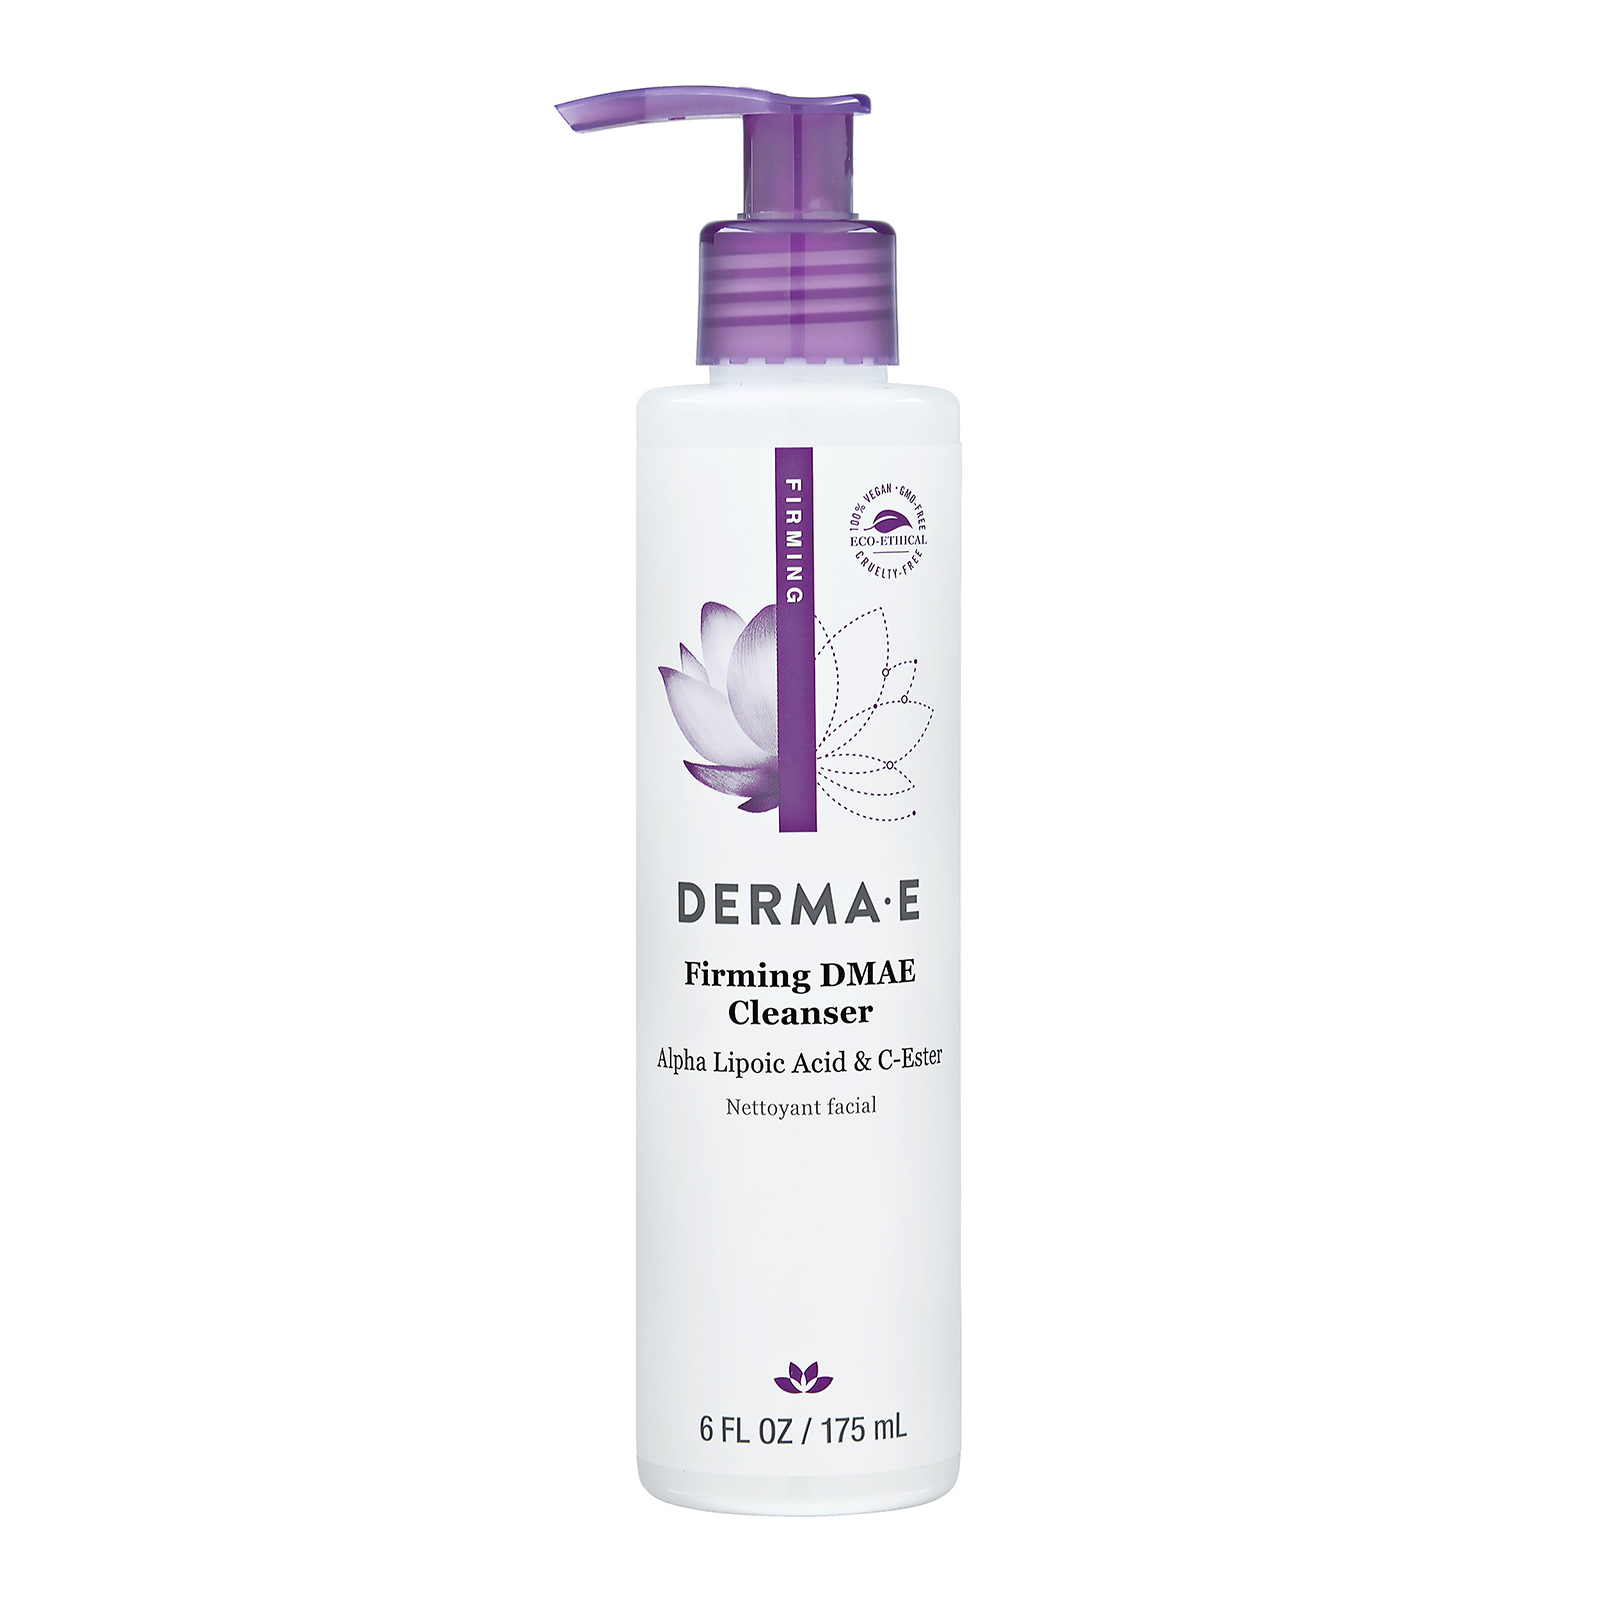 Derma e Firming DMAE Cleanser With Alpha Lipoic and C-Ester (For All Skin Types) 6oz, 175ml